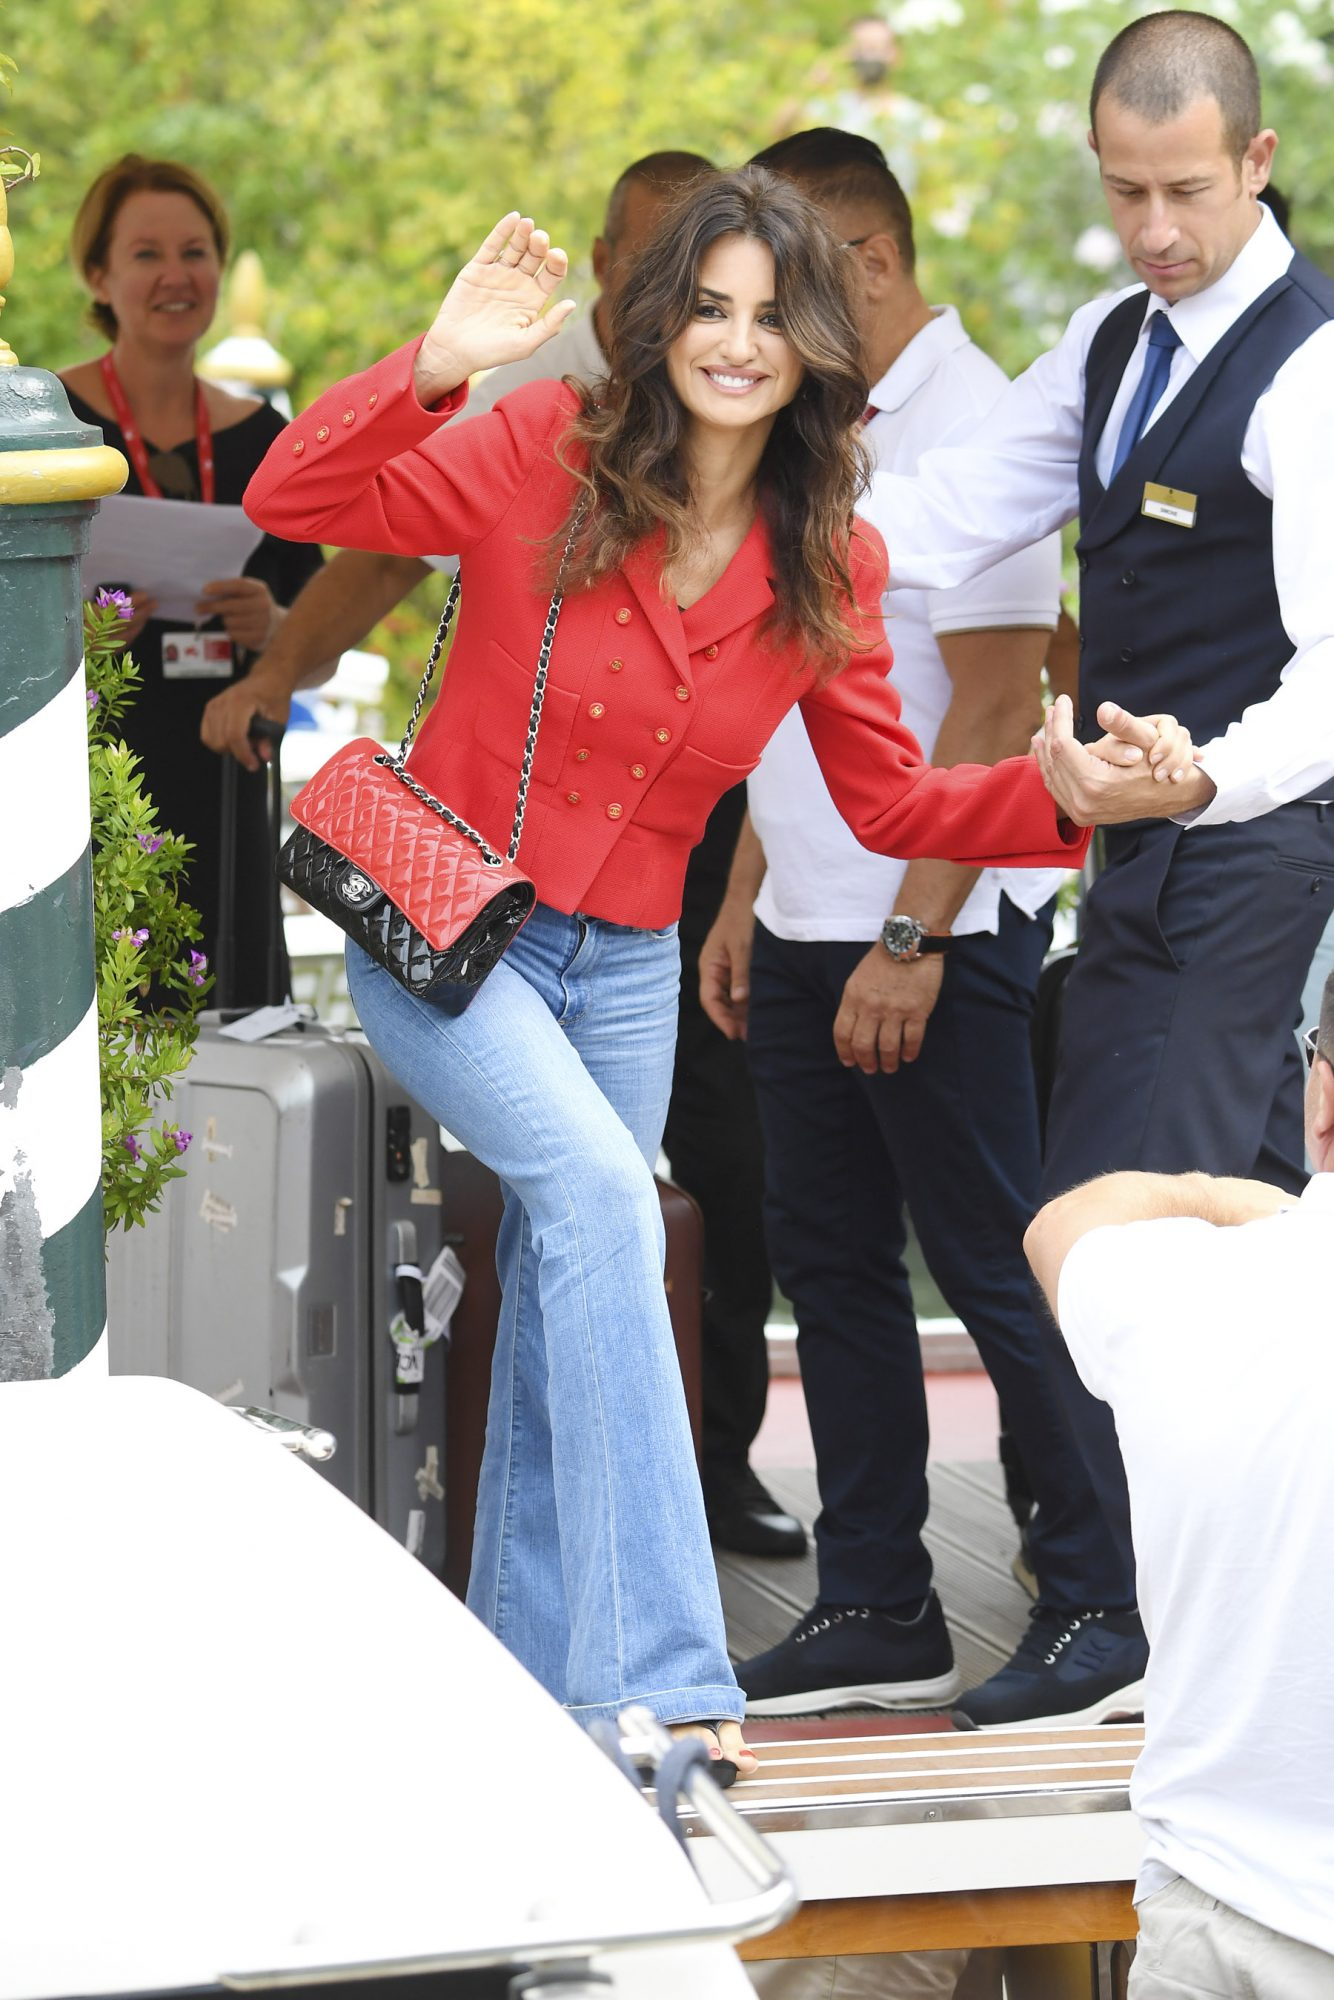 VENICE, ITALY - SEPTEMBER 02: Penelope Cruz is seen arriving at the 76th Venice Film Festival on September 02, 2019 in Venice, Italy. (Photo by Pascal Le Segretain/GC Images,)